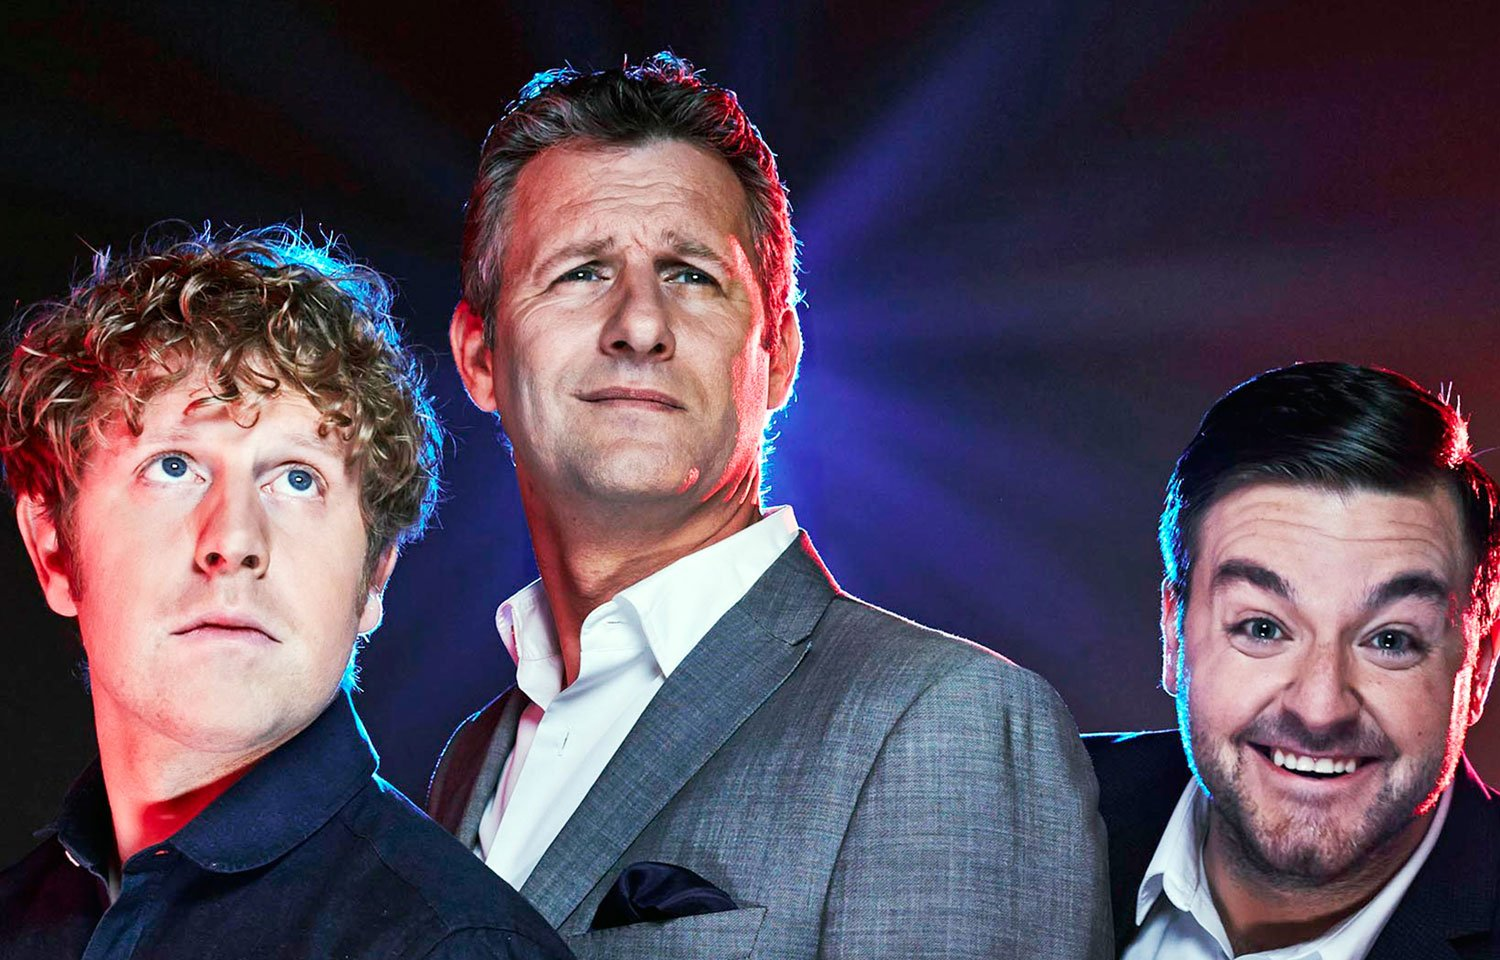 THE LAST LEG RETURNS WITH A STAND UP TO CANCER SPECIAL